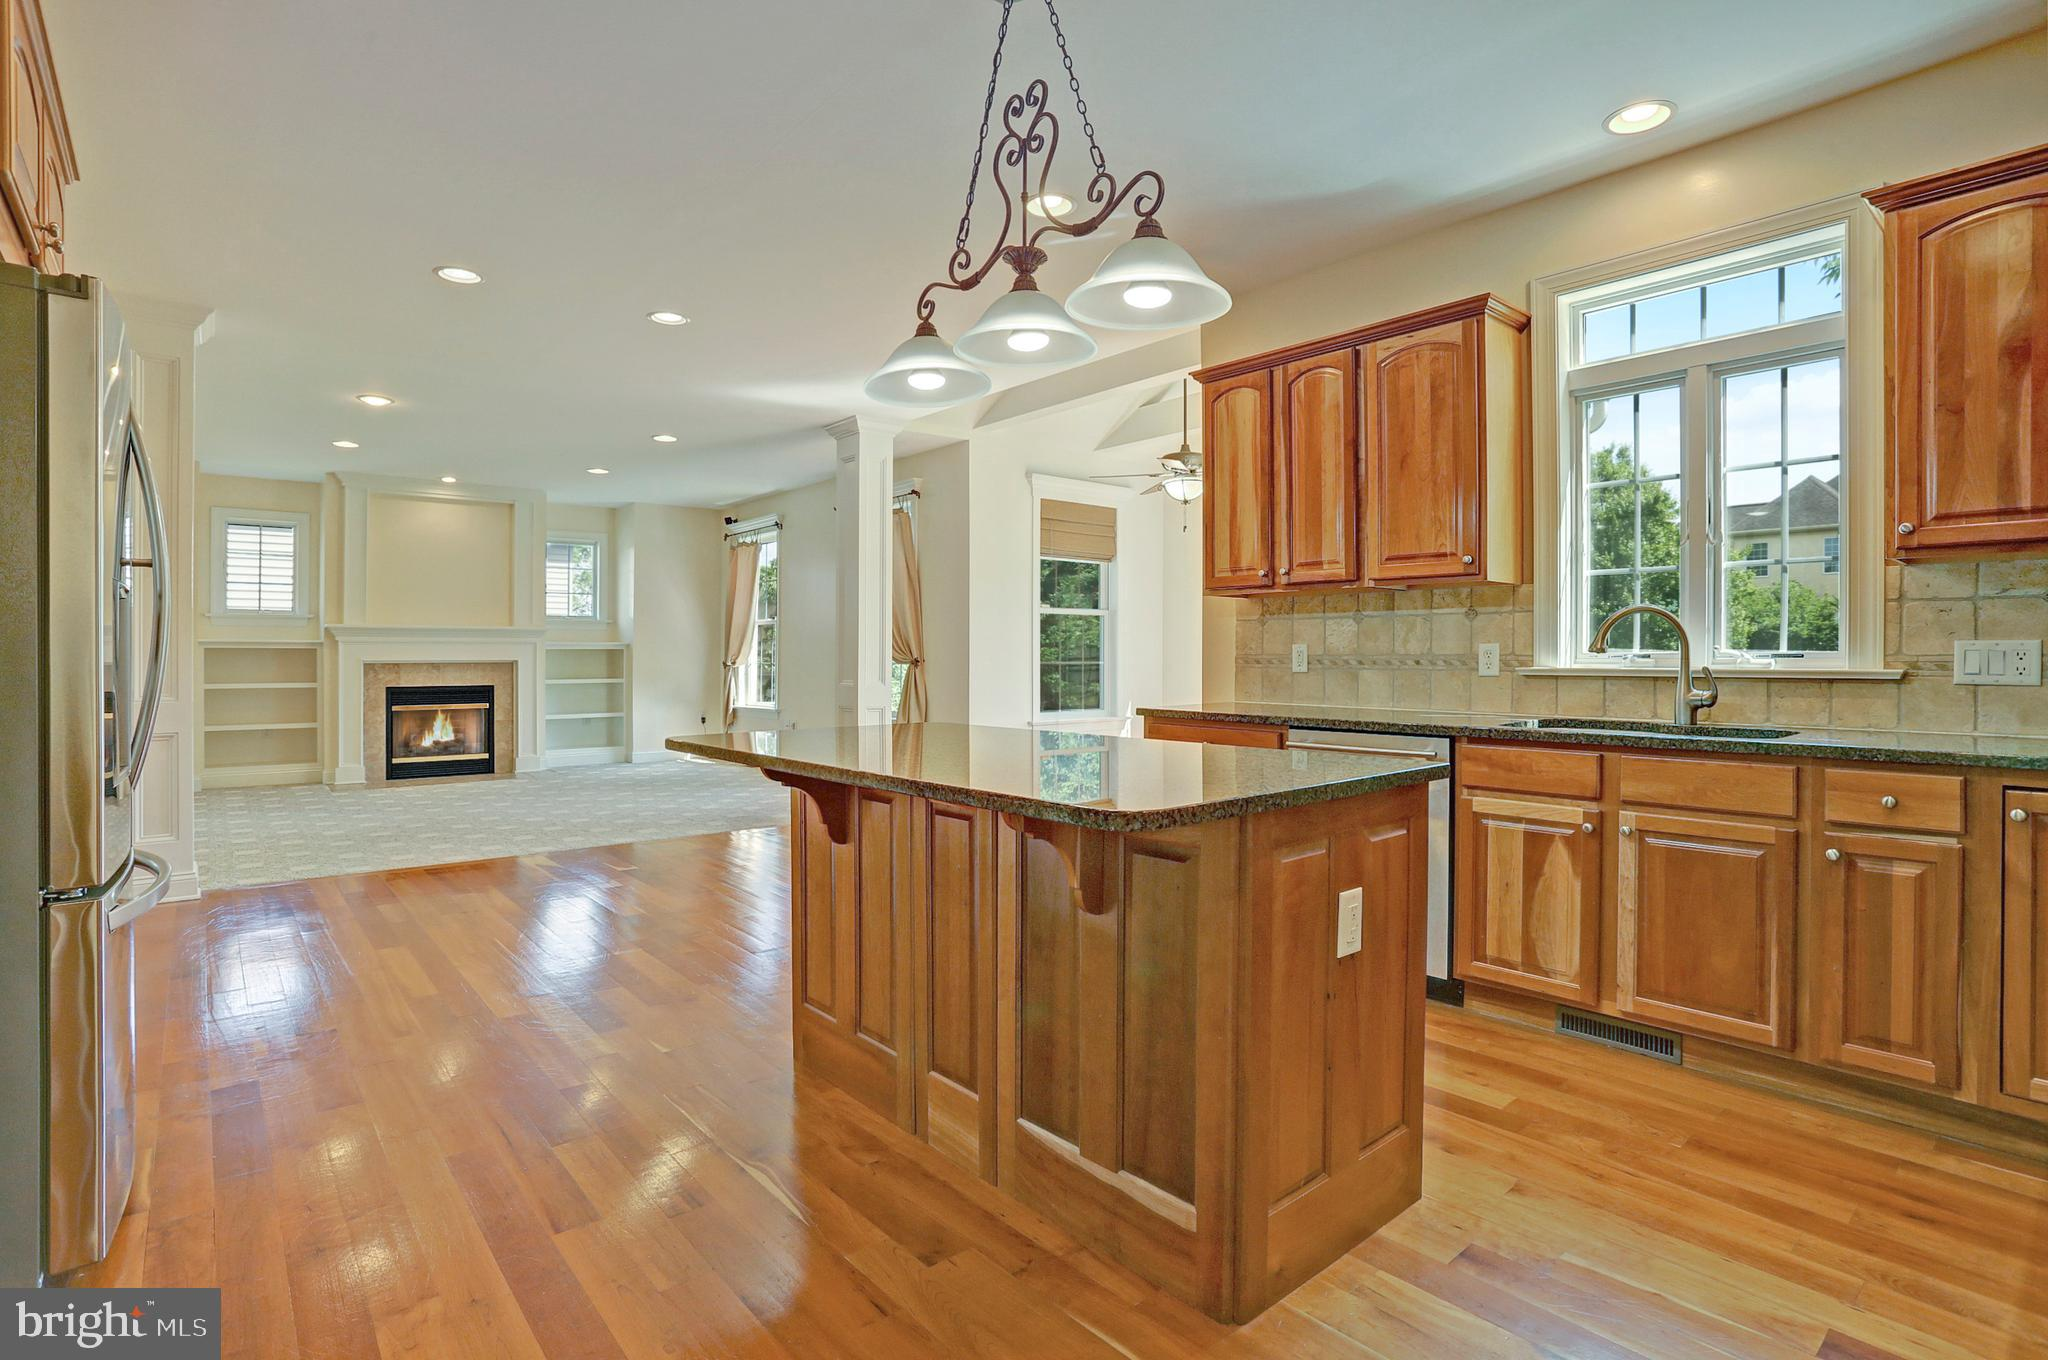 Cherry Wood Floors in the Kitchen